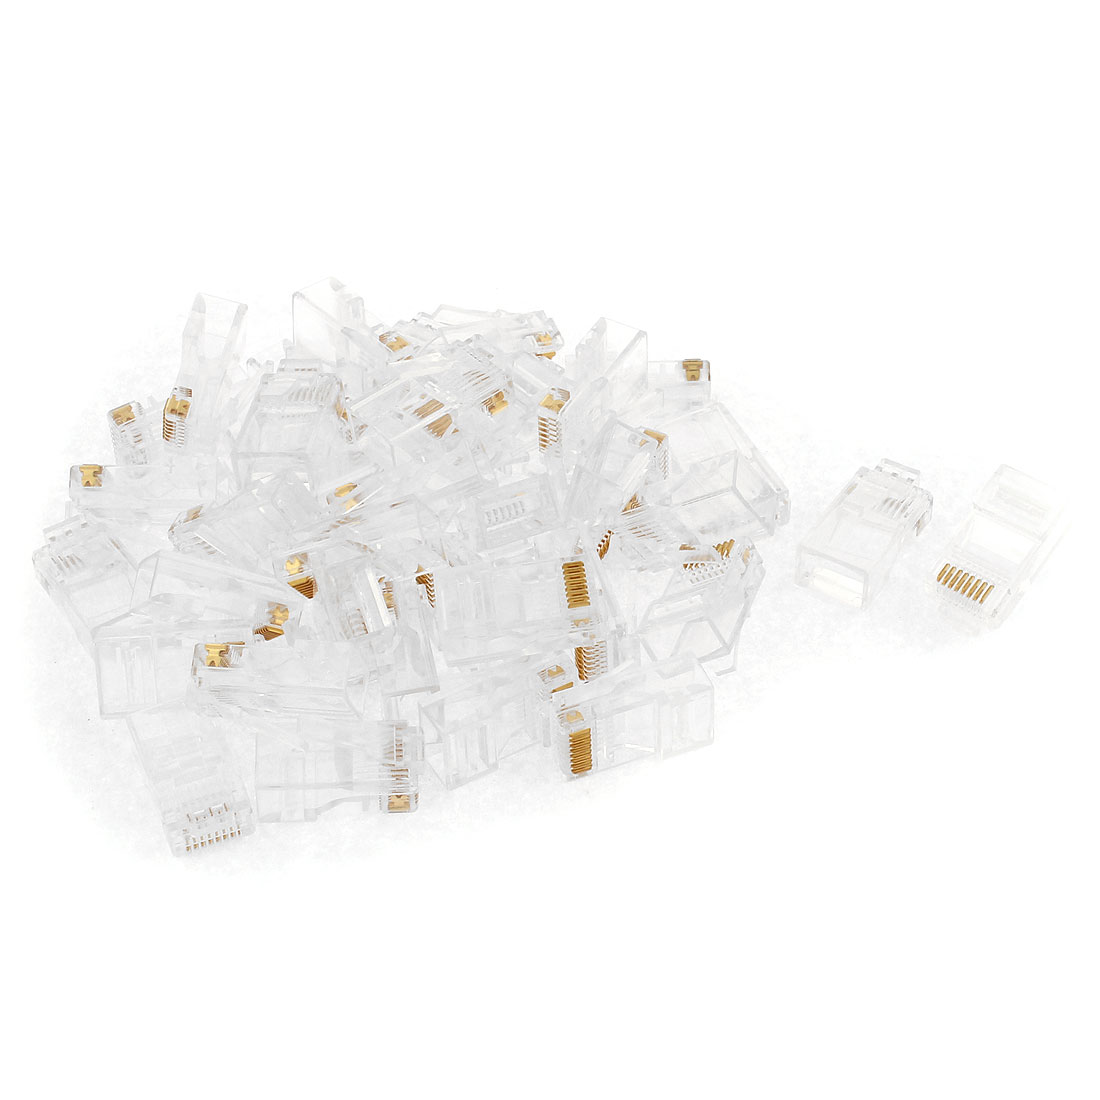 40 Pcs RJ45 8P8C Network Cable CAT 5E Shielded Modular Jack Connector Clear